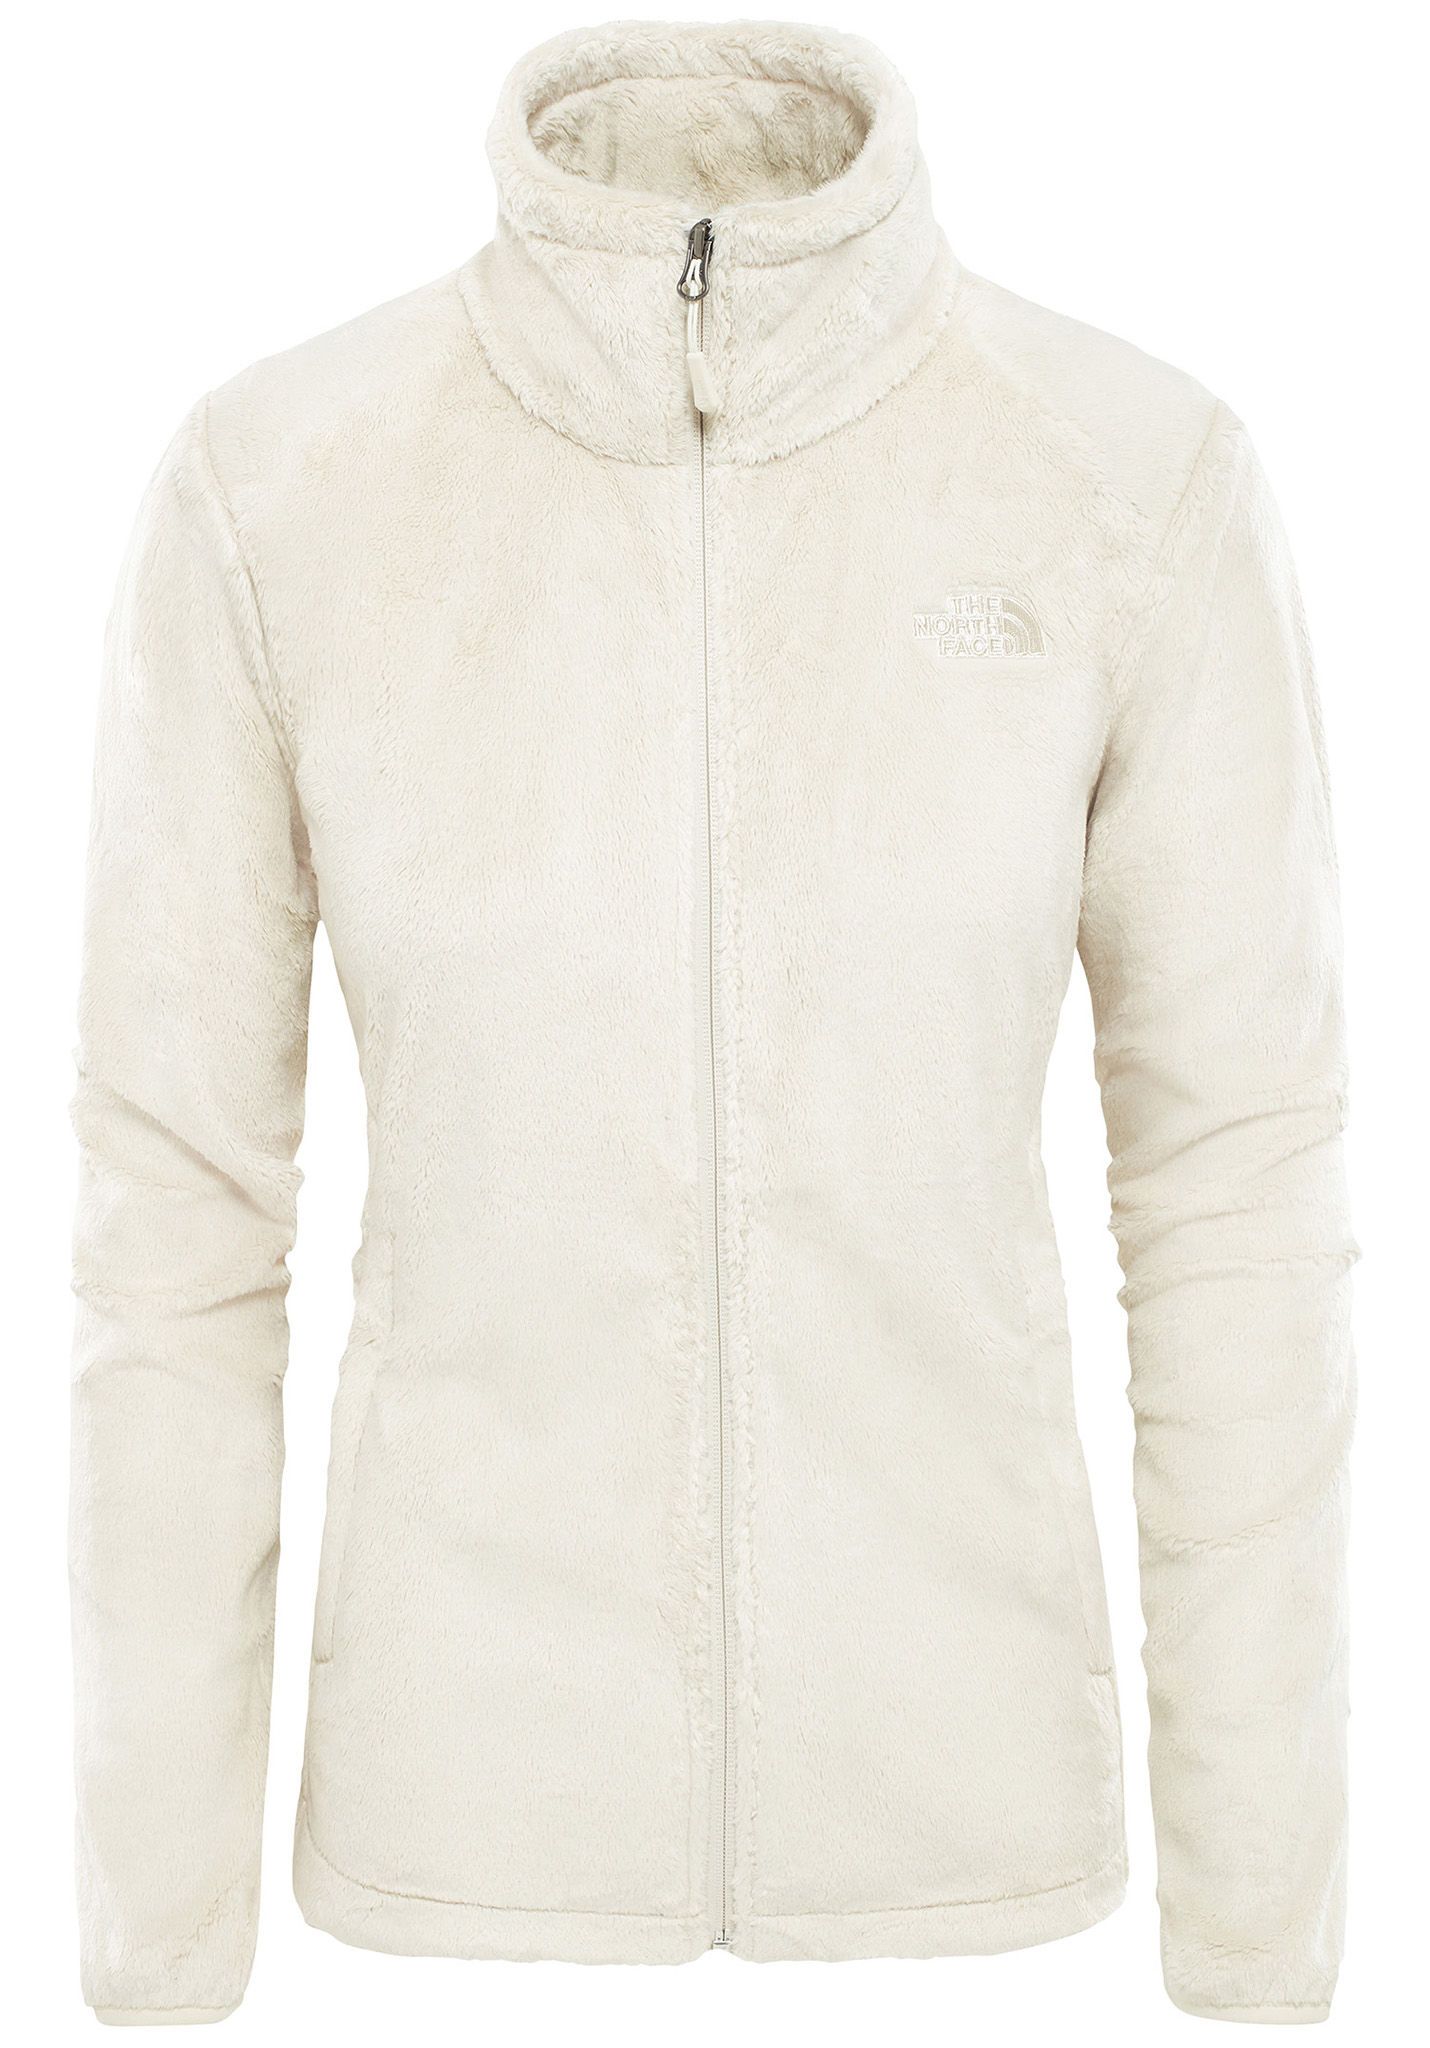 c8ae97d1329d THE NORTH FACE Osito 2 - Fleece Jacket for Women - White - Planet Sports